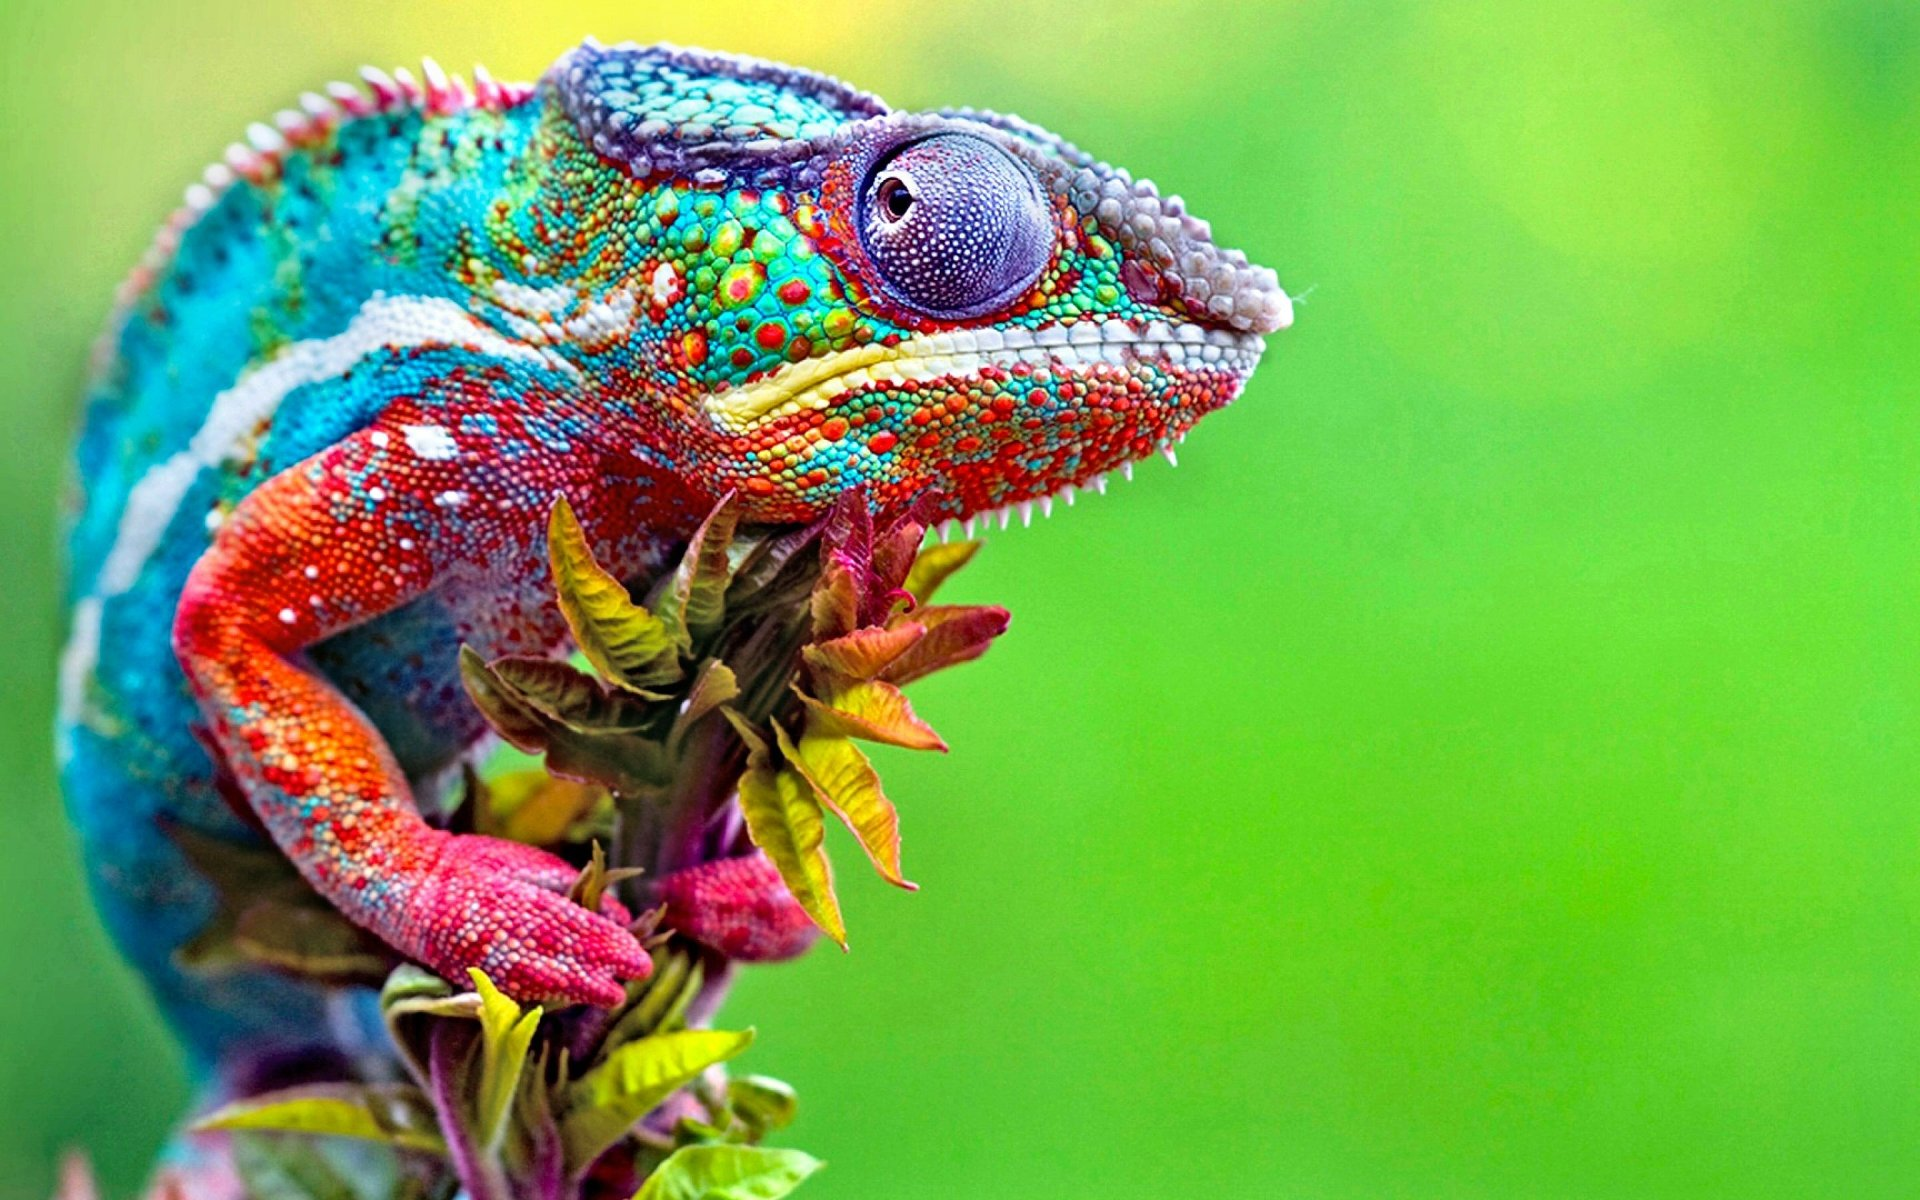 Animal - Chameleon  Green Lizard Animal Colorful Wallpaper